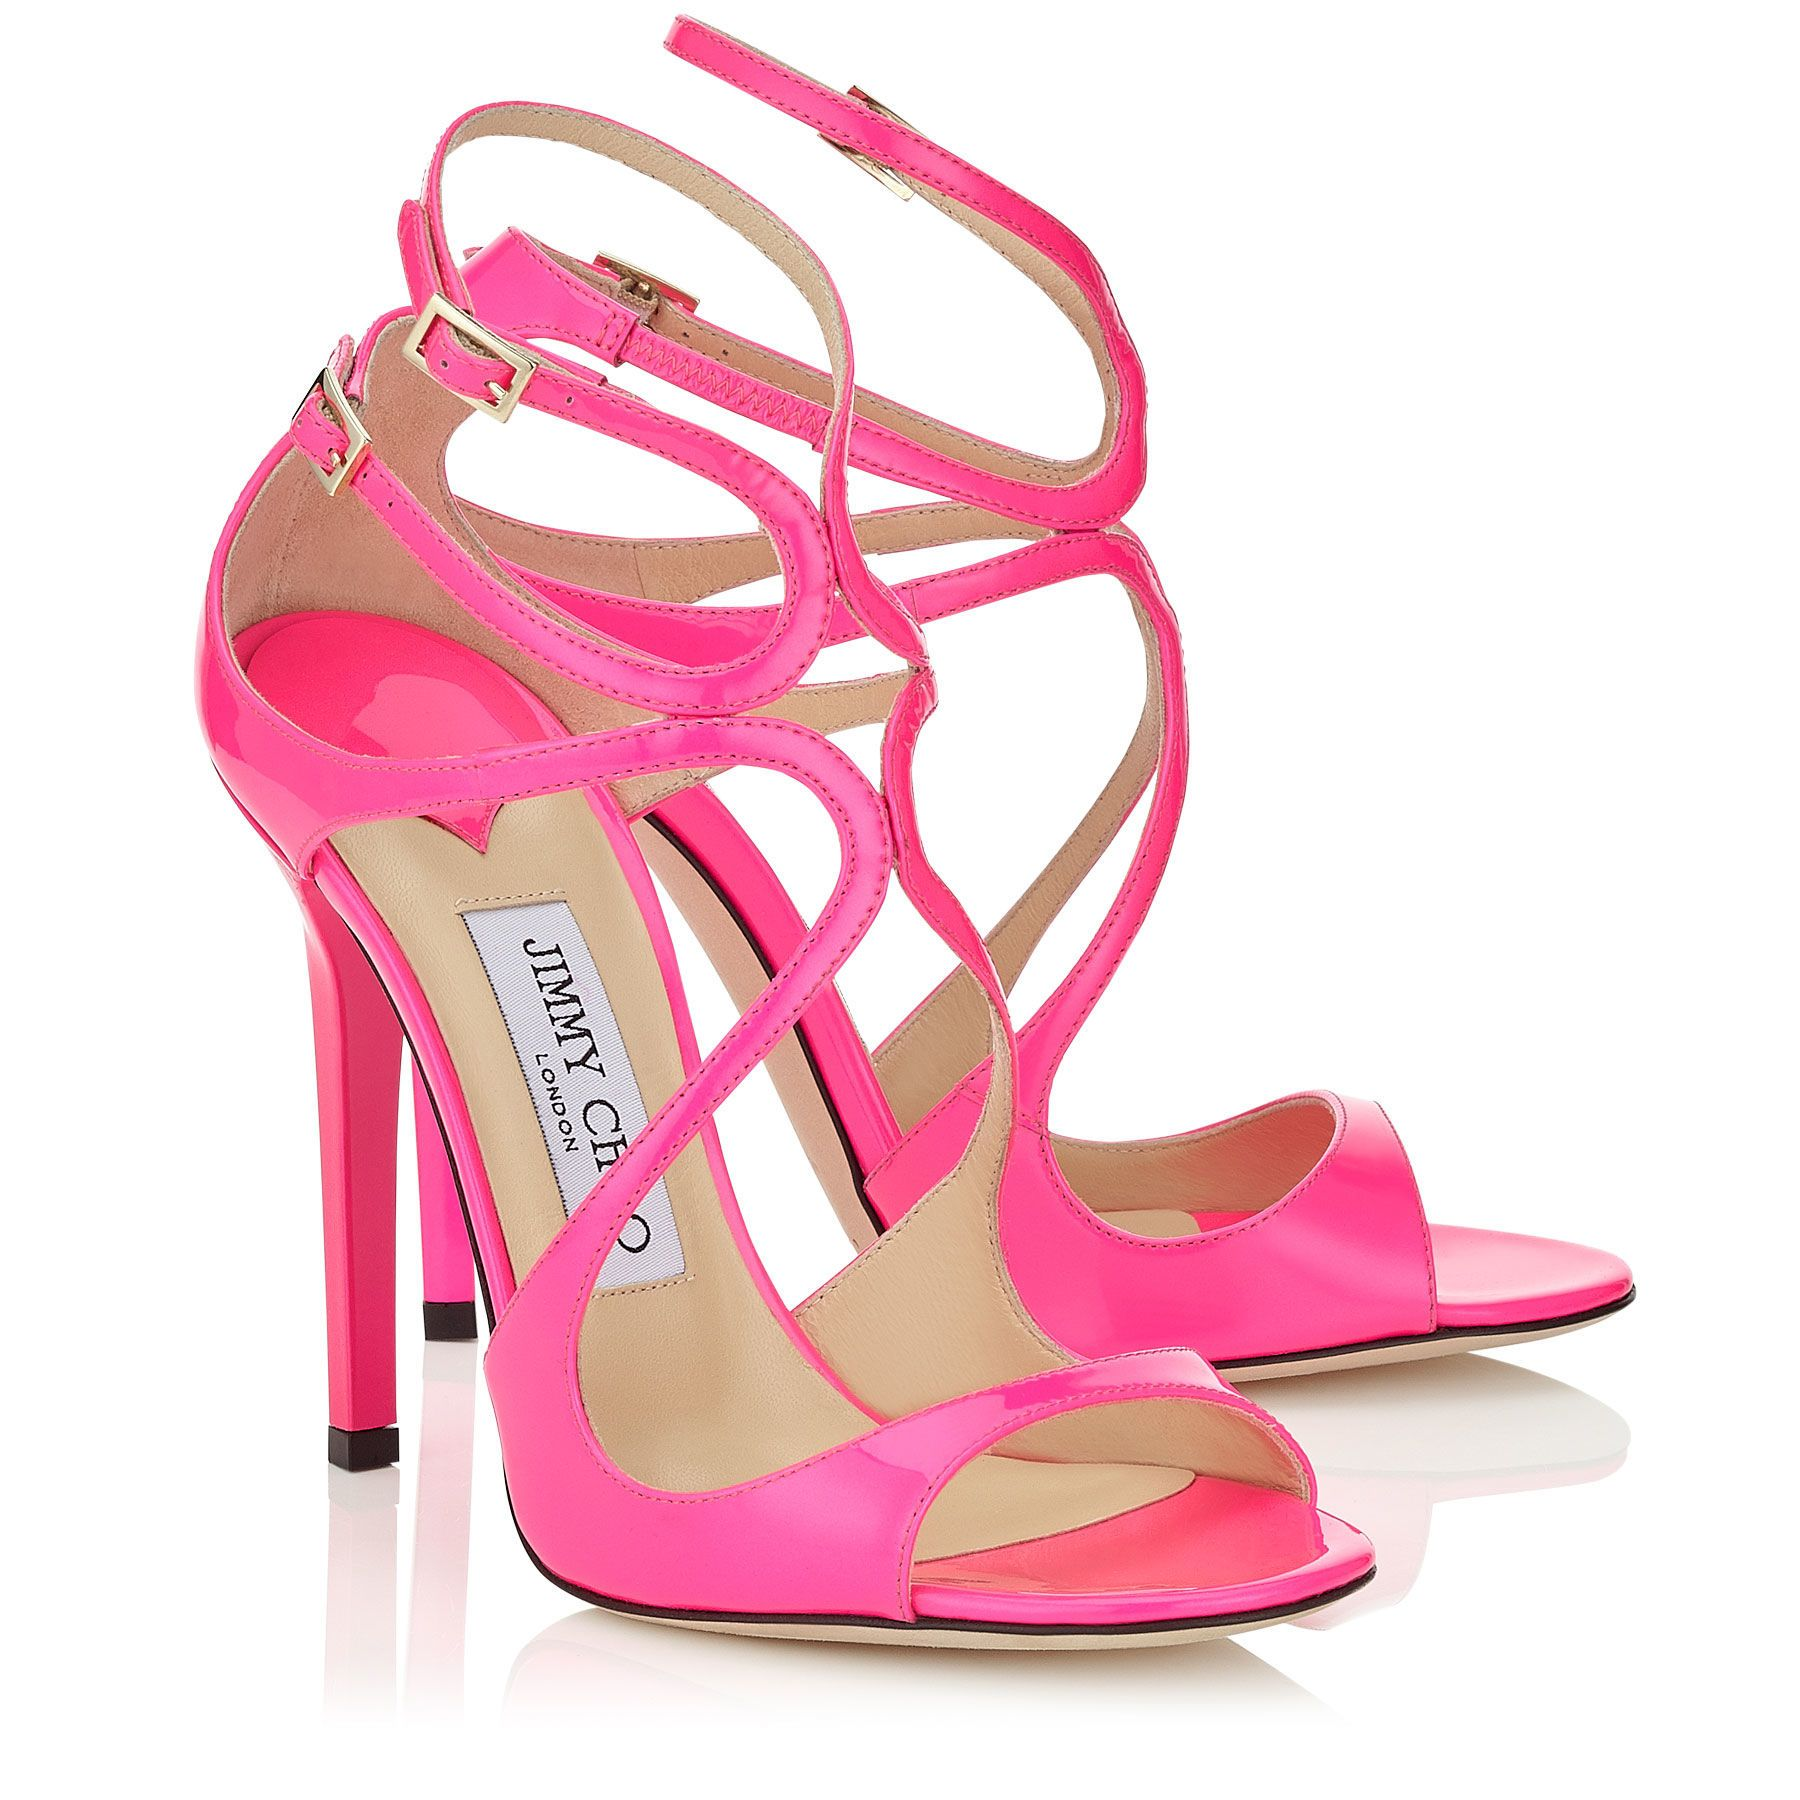 JIMMY CHOO | Fuchsia - Hot pink ,happy color..... | Pinterest ...